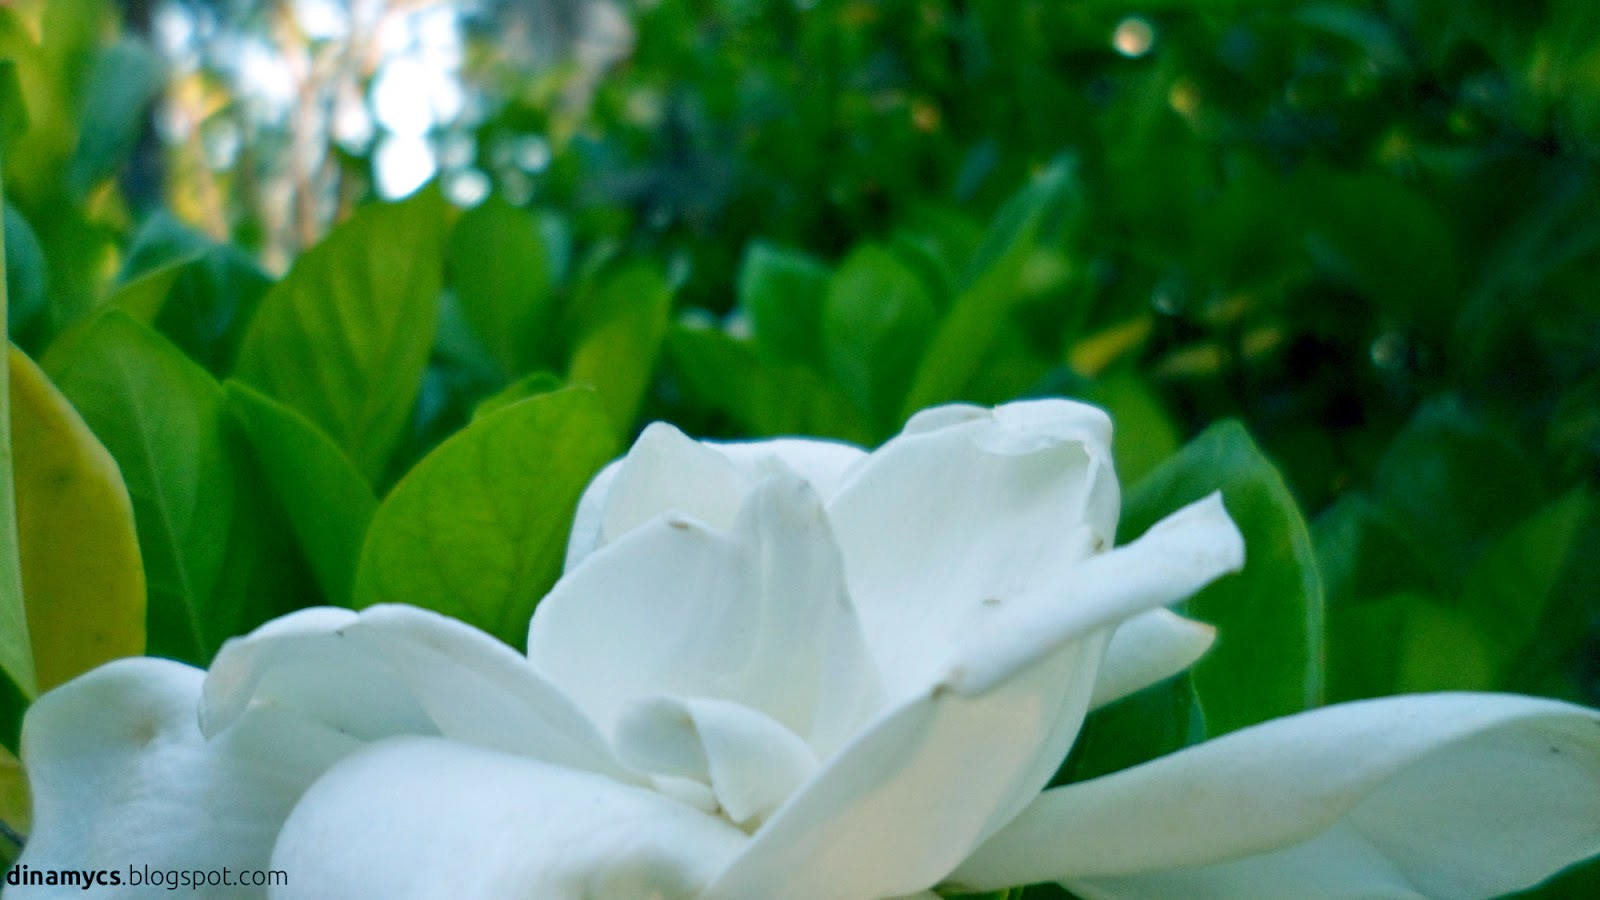 white flowers - flower wallpaper hd - flores blancas hd